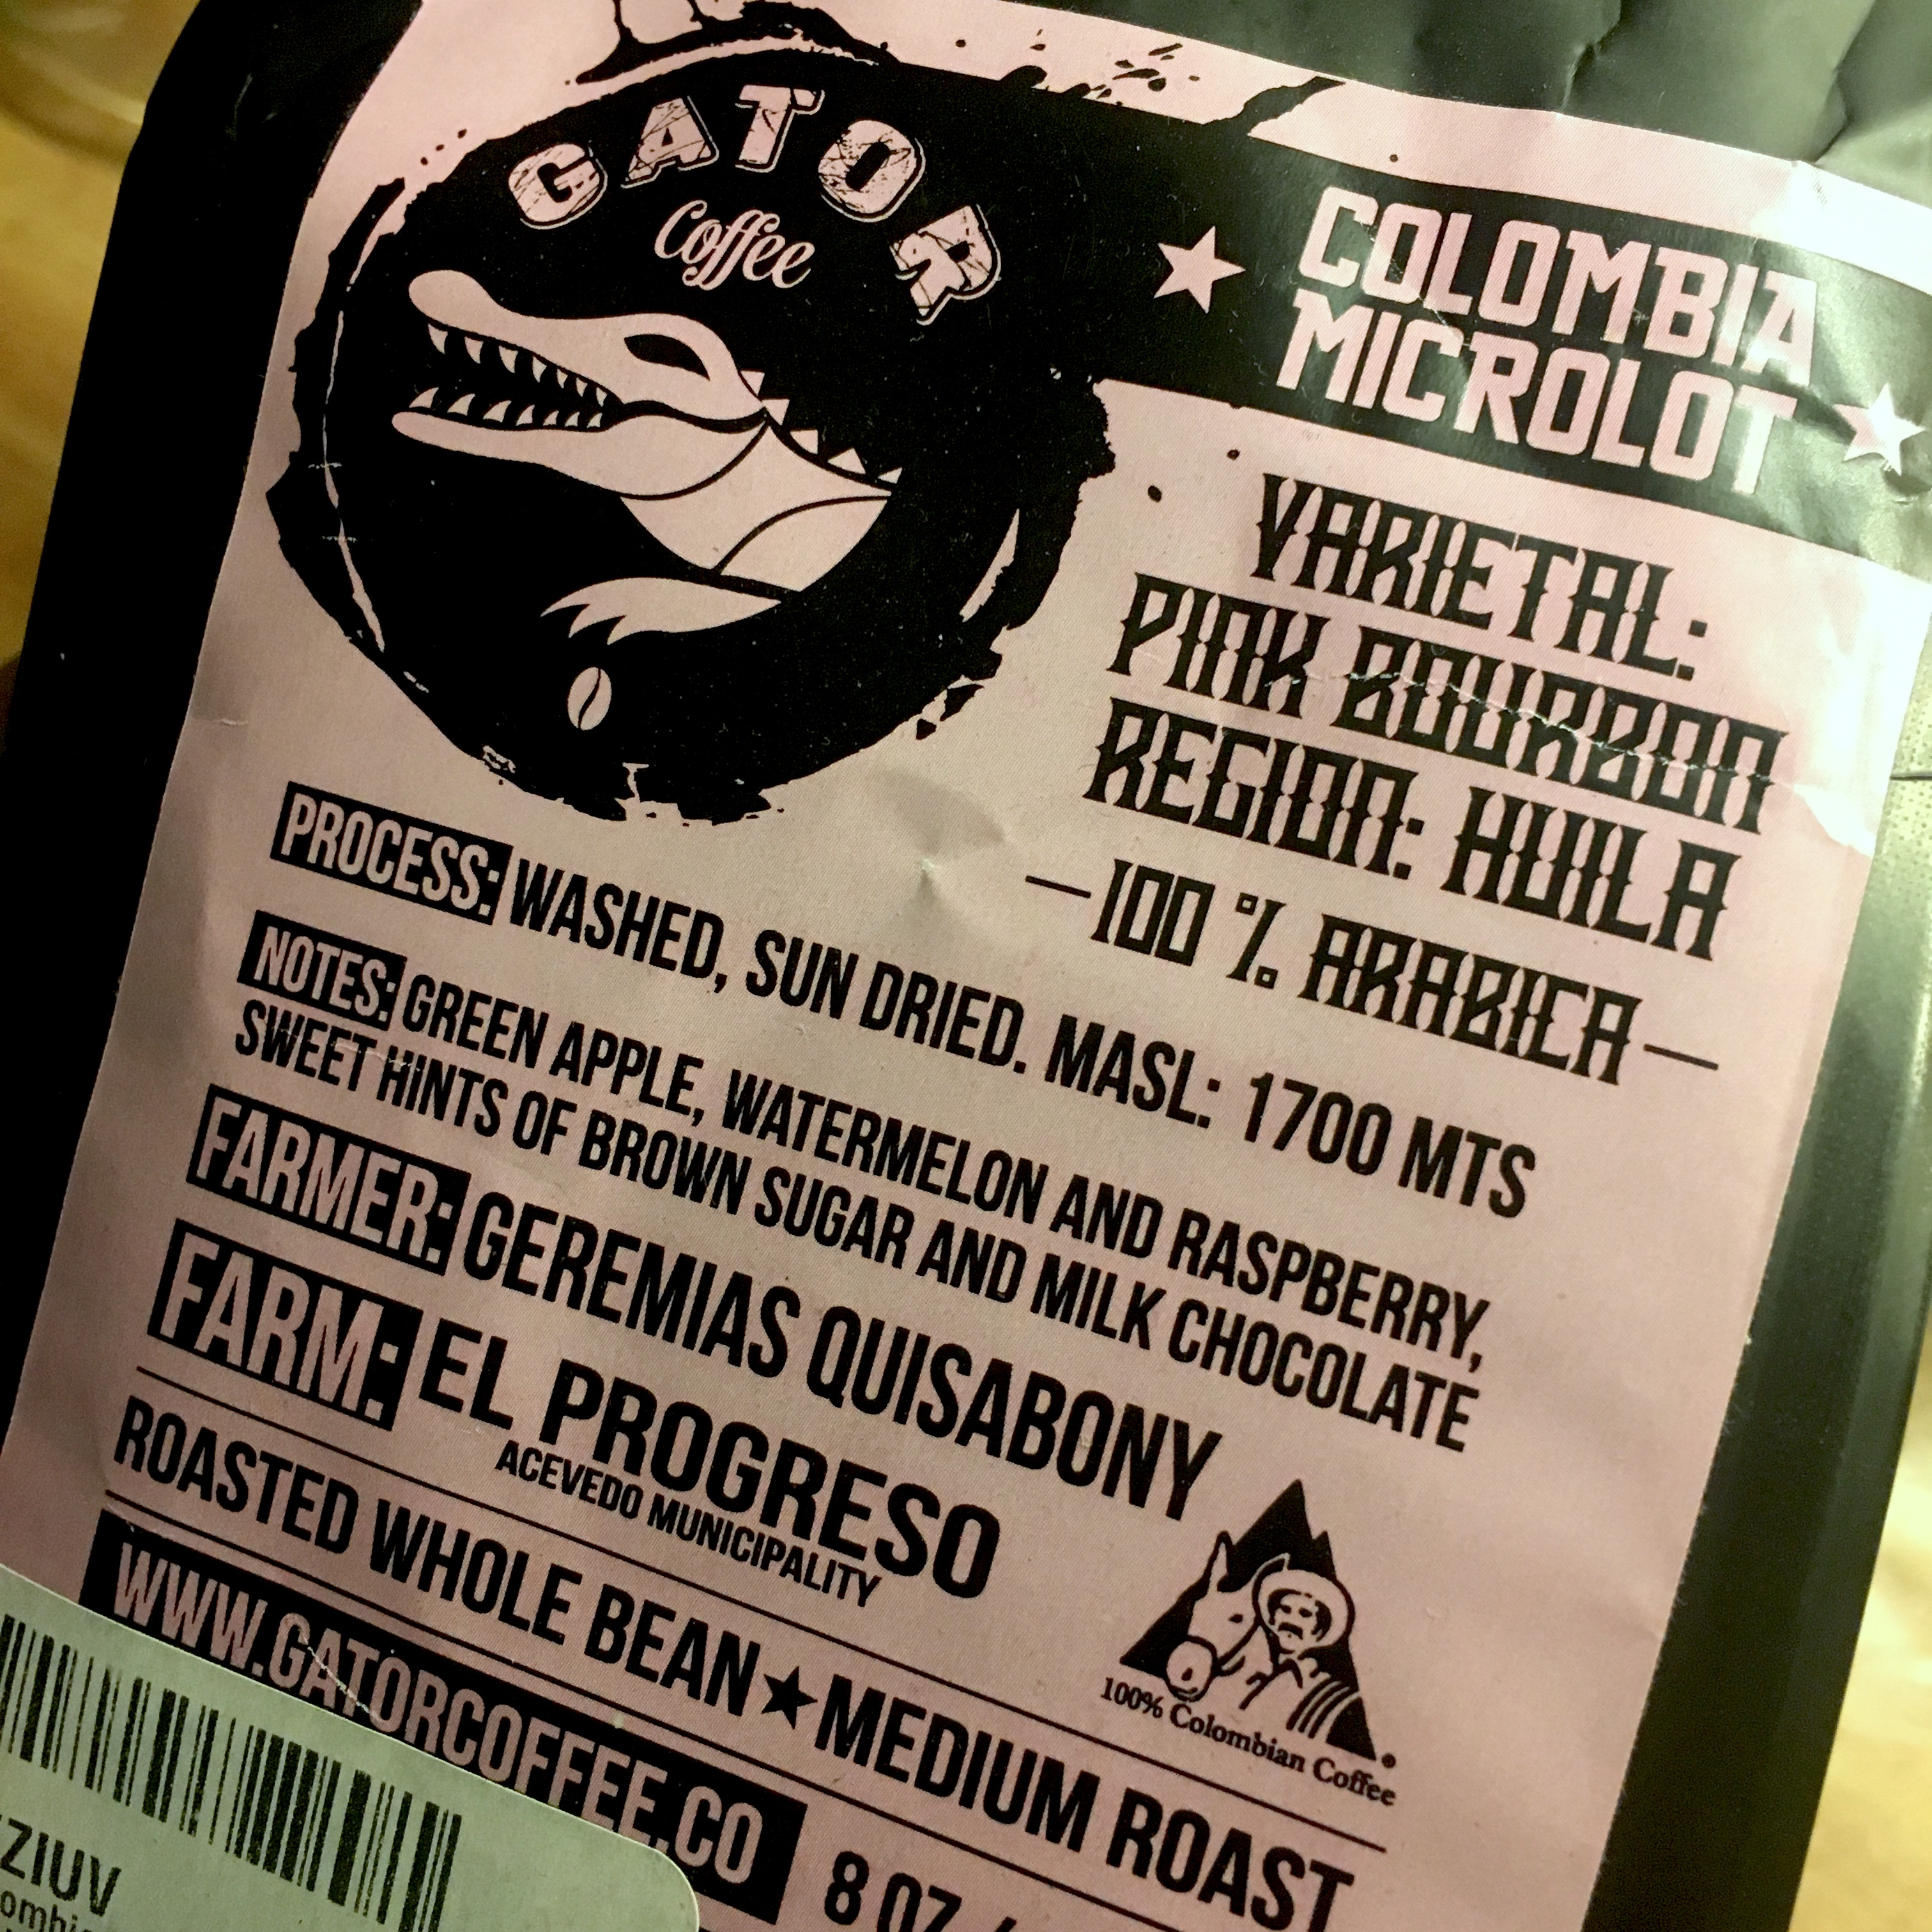 Gator Coffee Colombia Pink Bourbon